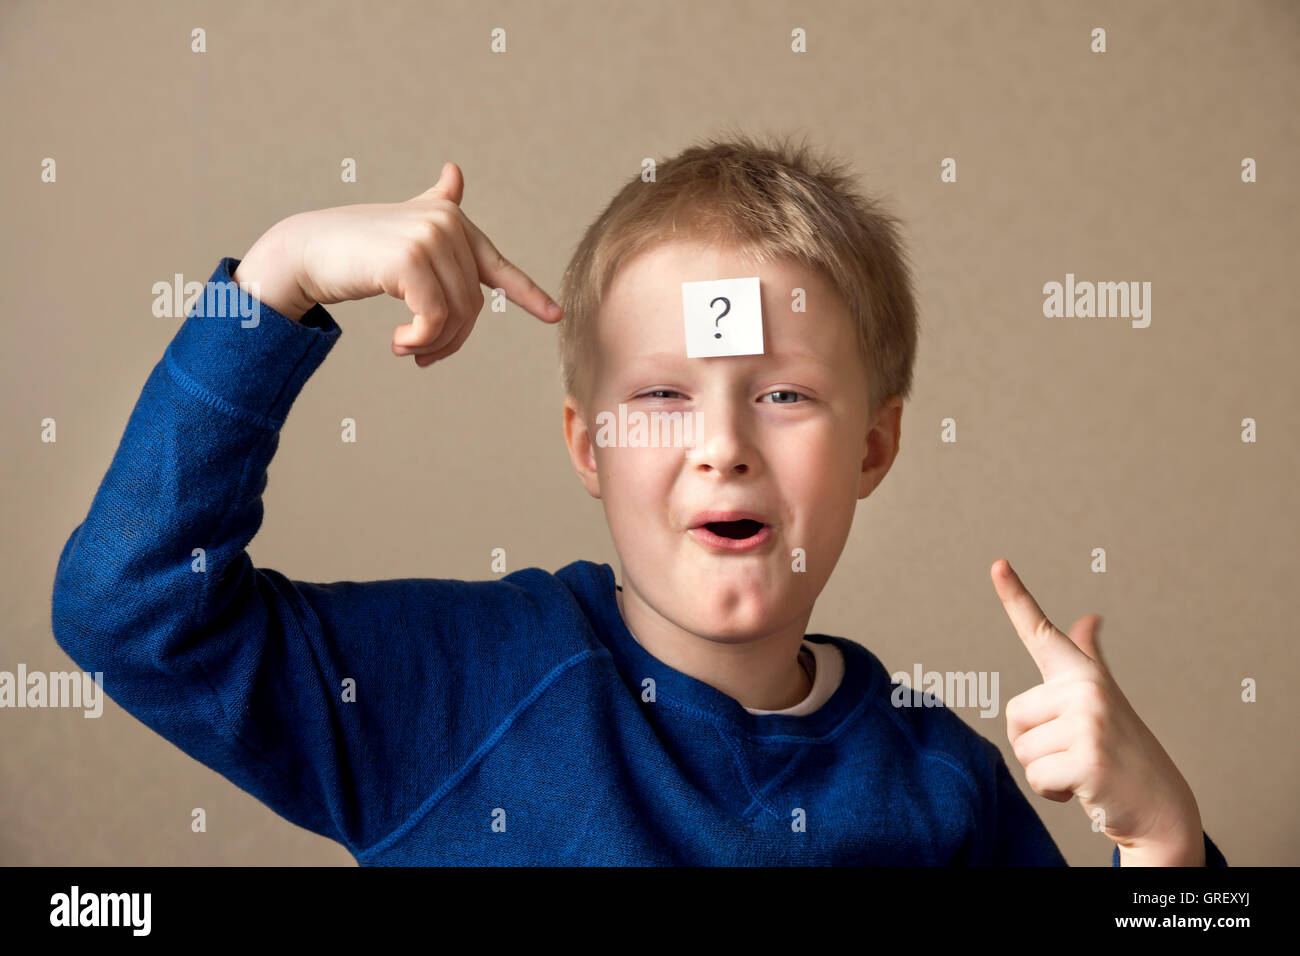 thinking young boy with question mark on gray background - Stock Image